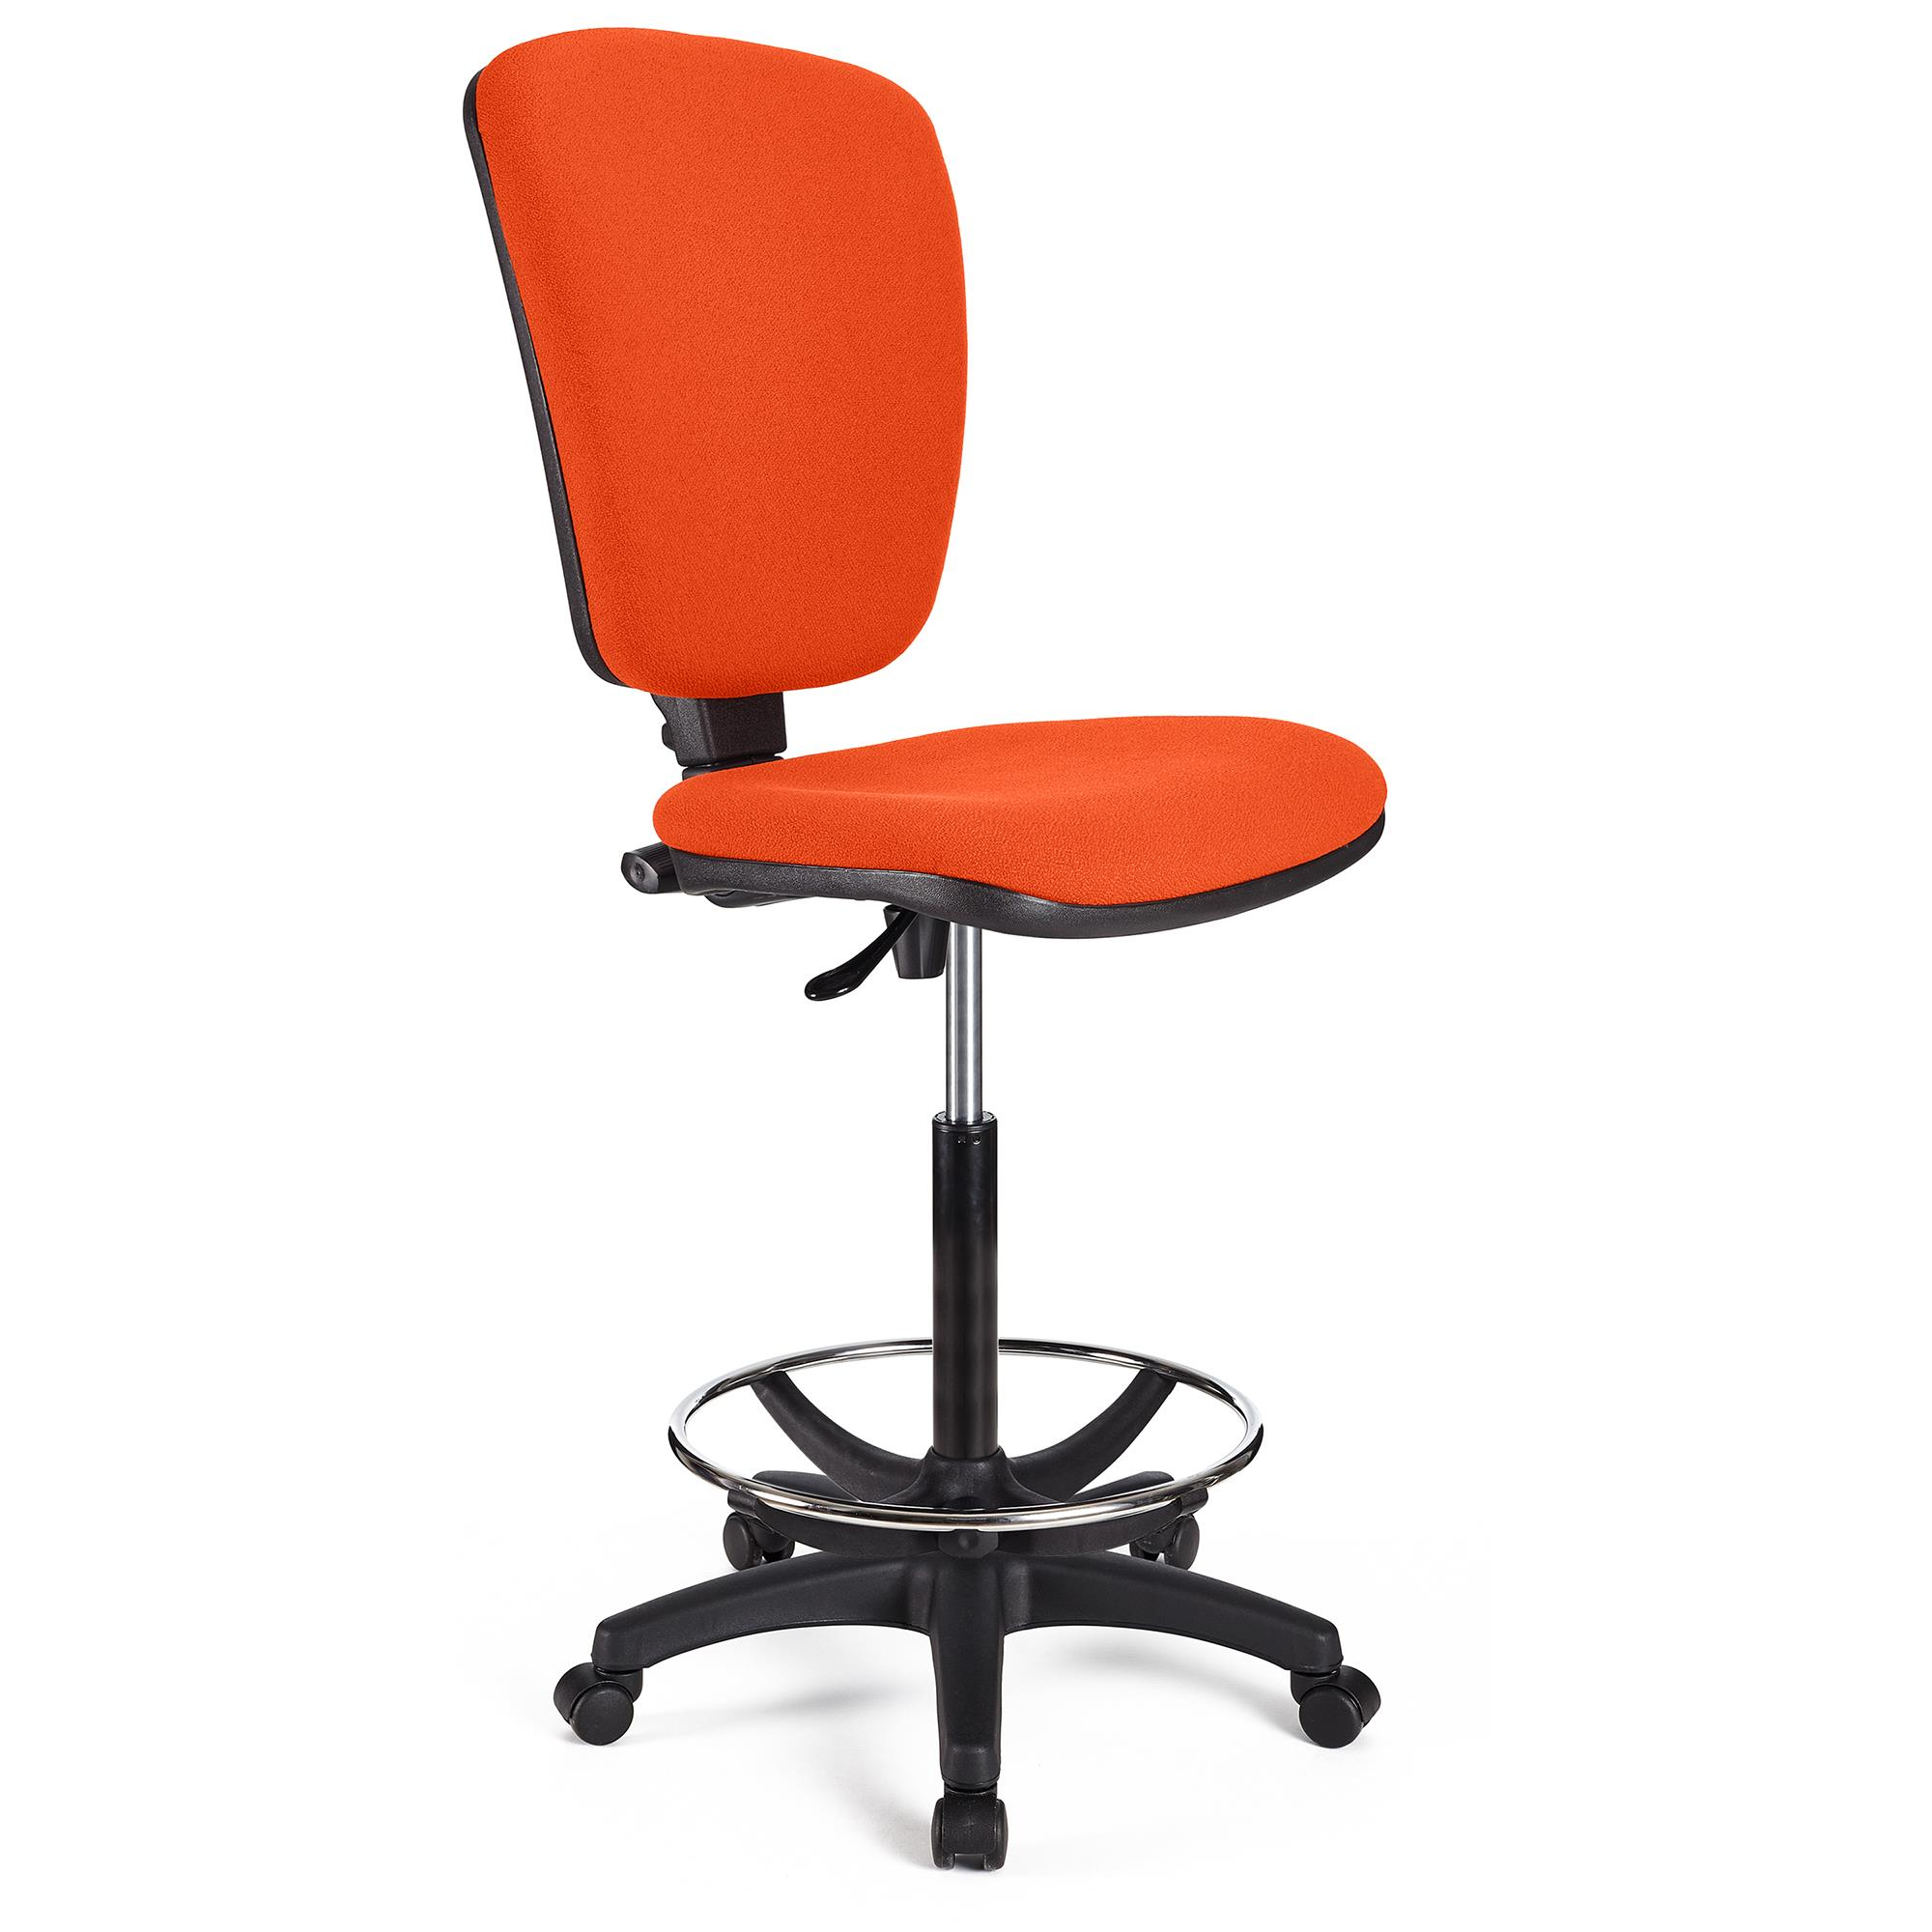 Tabouret de Travail CALIPSO SANS ACCOUDOIRS, Dossier Ajustable, Grand Rembourrage, Tissu, Orange